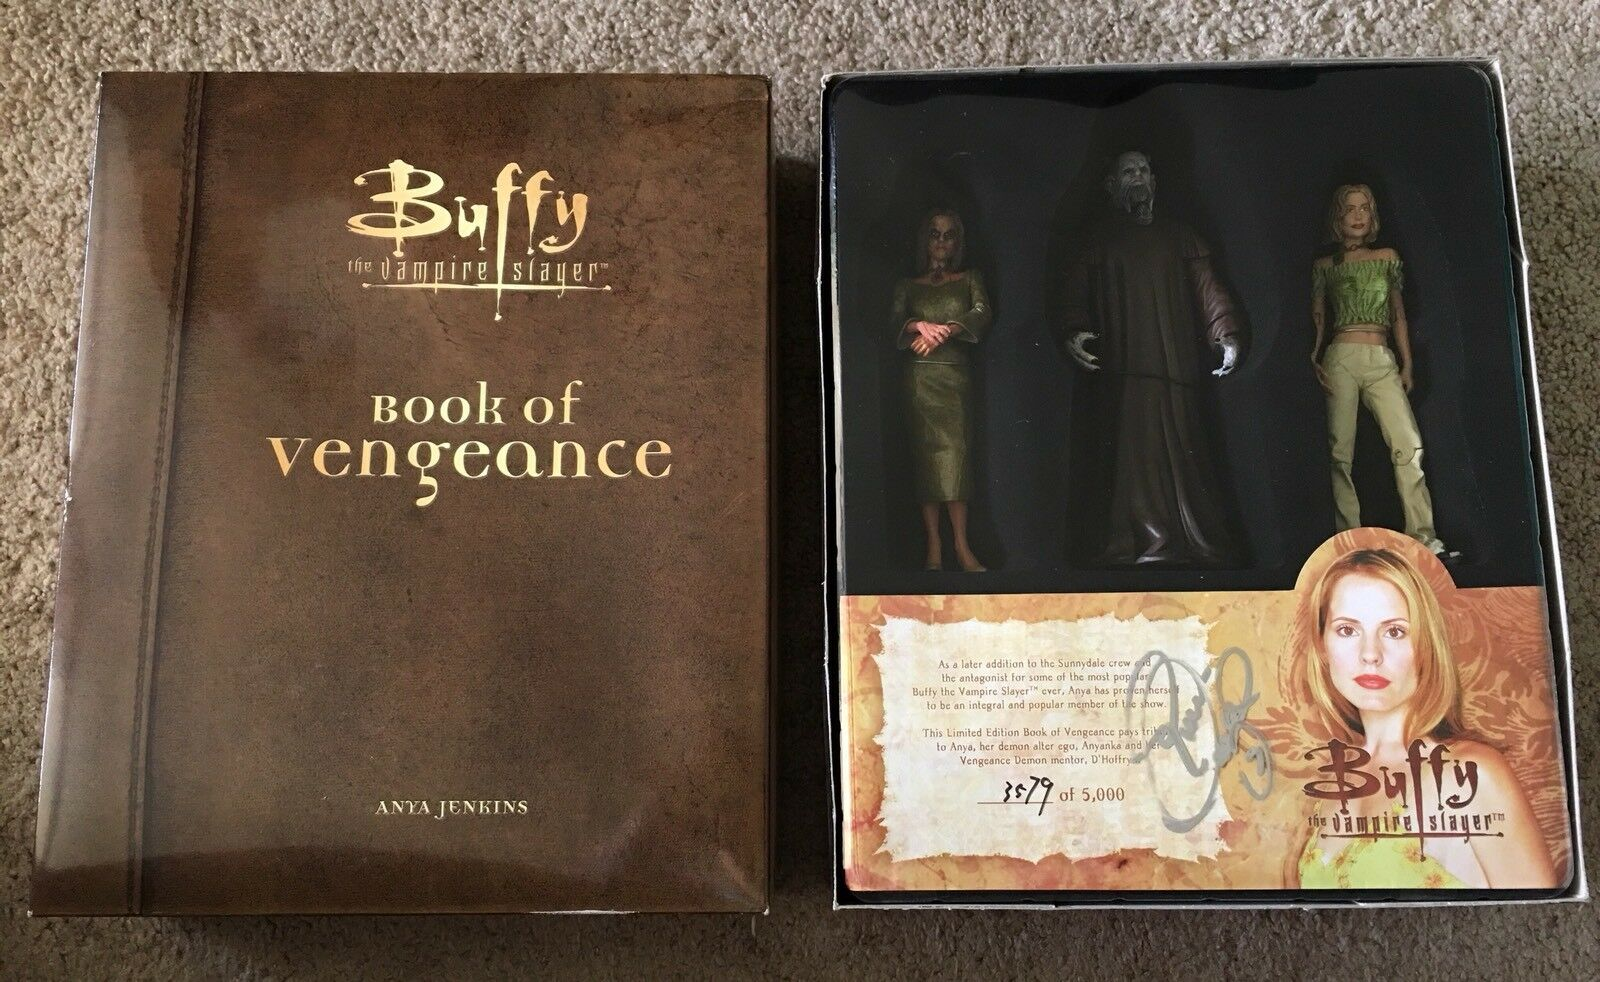 Buffy the Vampire Slayer Book of Vengeance box set Emma Caufield Auto Anya